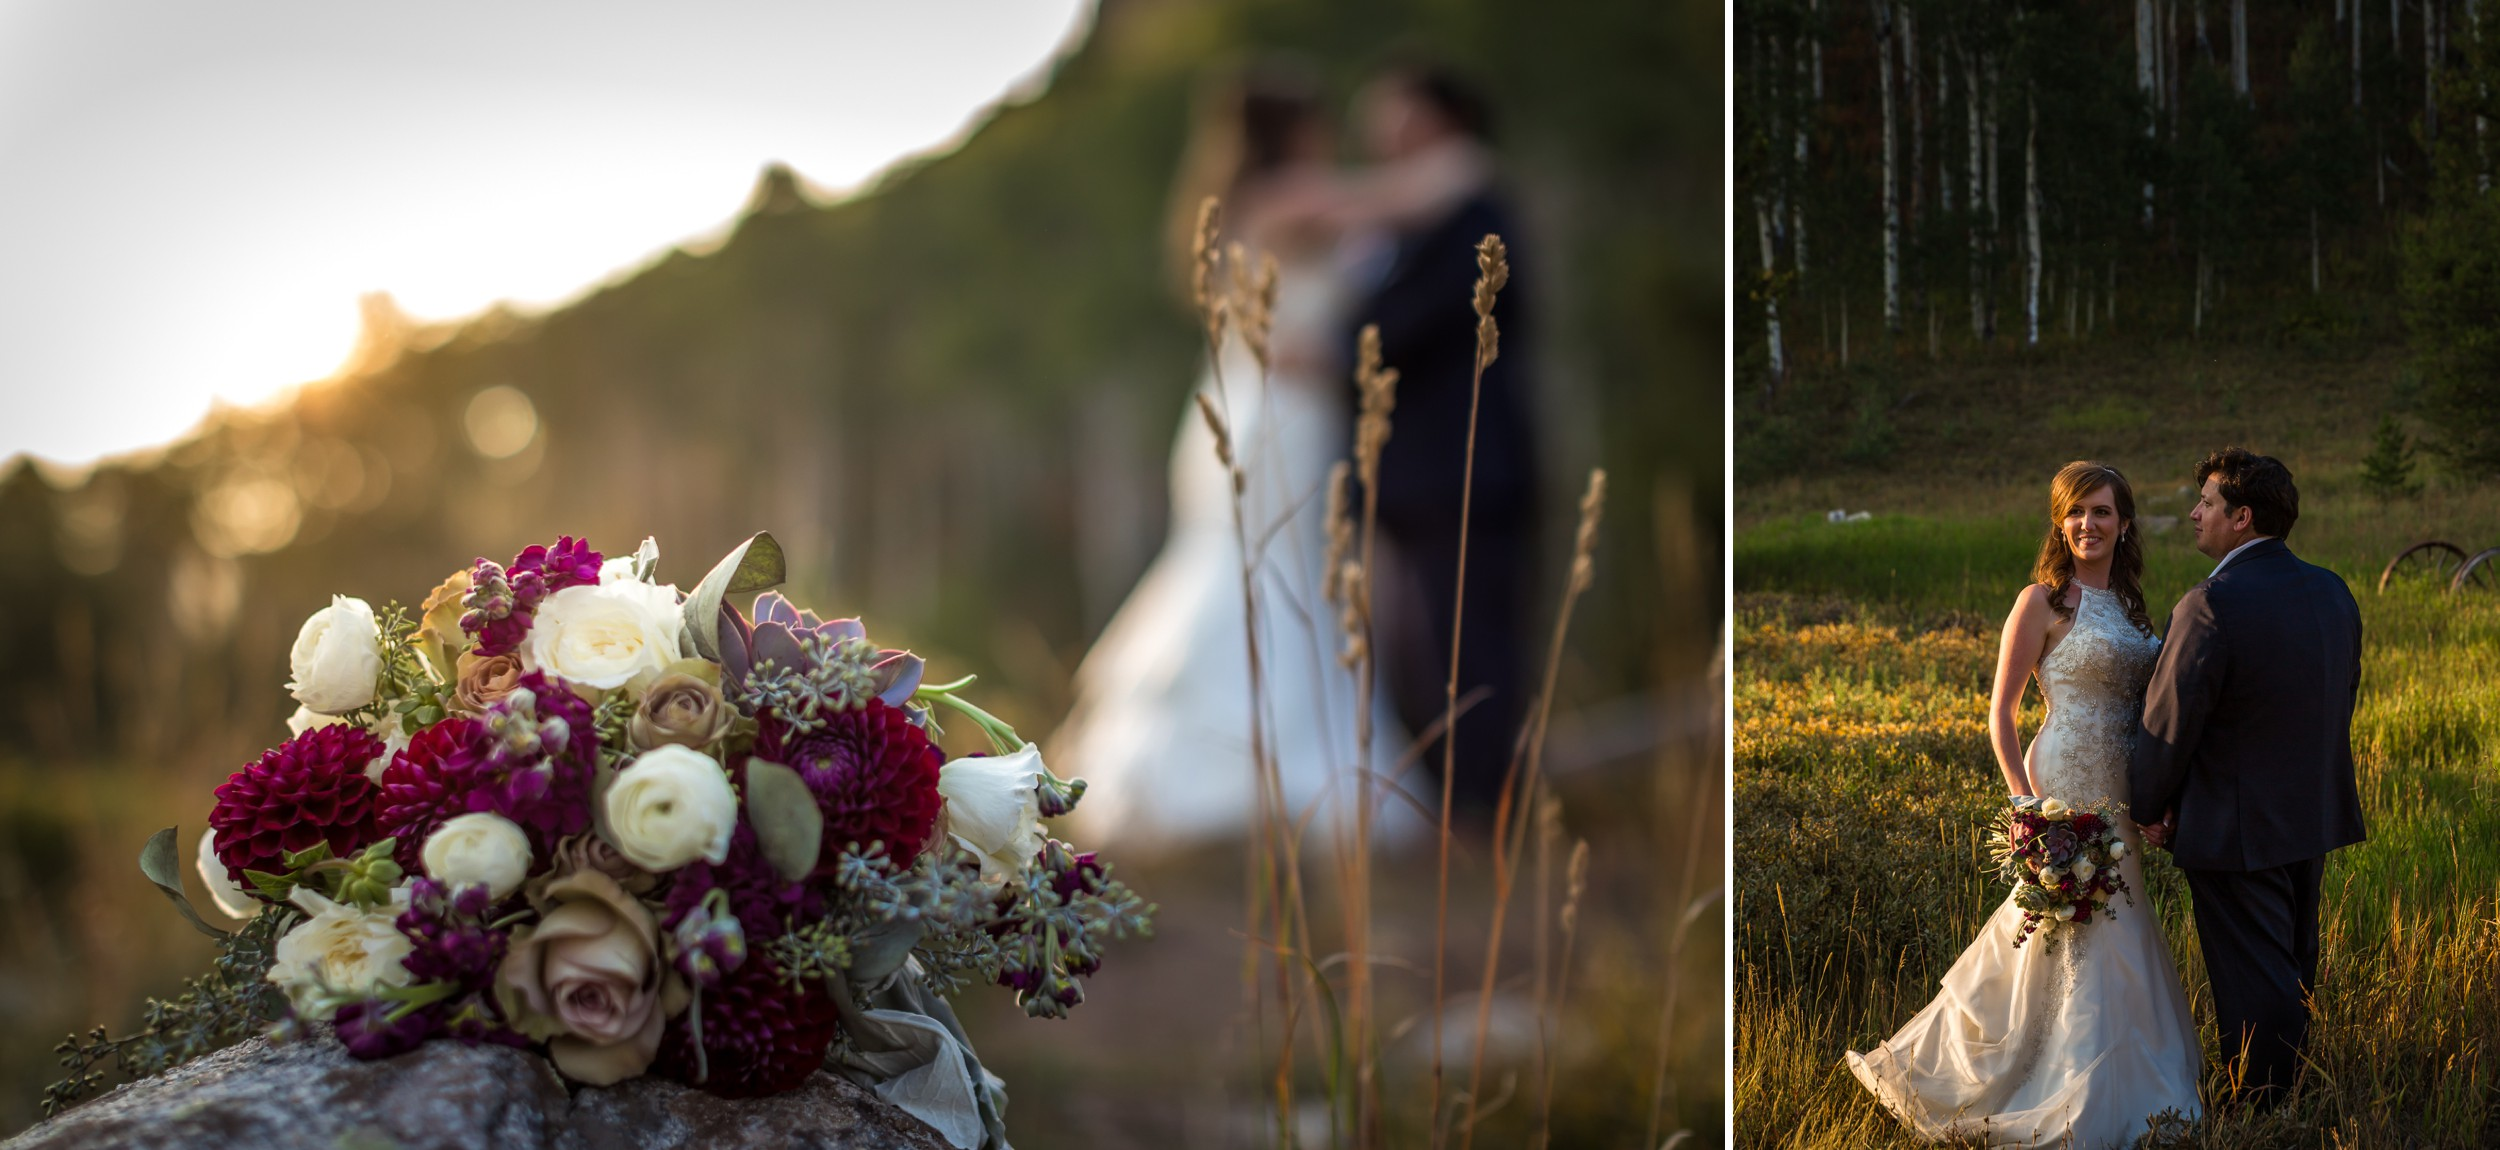 Piney_River_Ranch_Vail_Colorado_Wedding_Kristopher_Lindsay_Photography 17.jpg